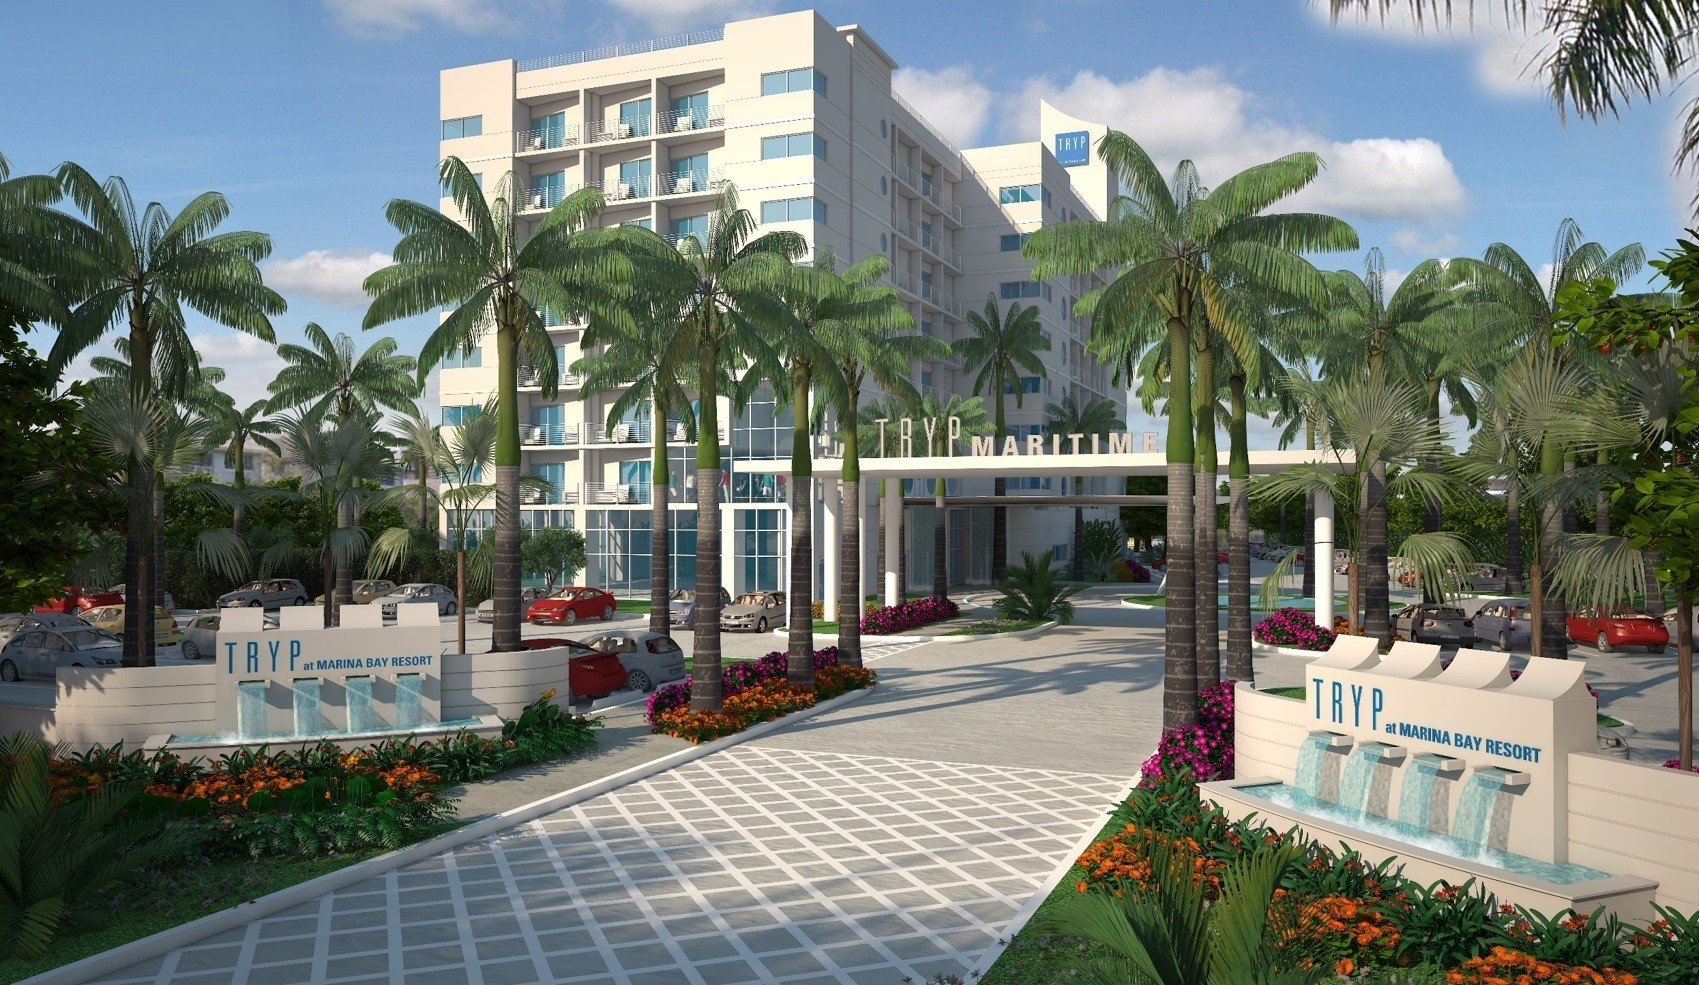 Tryp Hotel Coming To Fort Lauderdale In 2016 Sun Sentinel